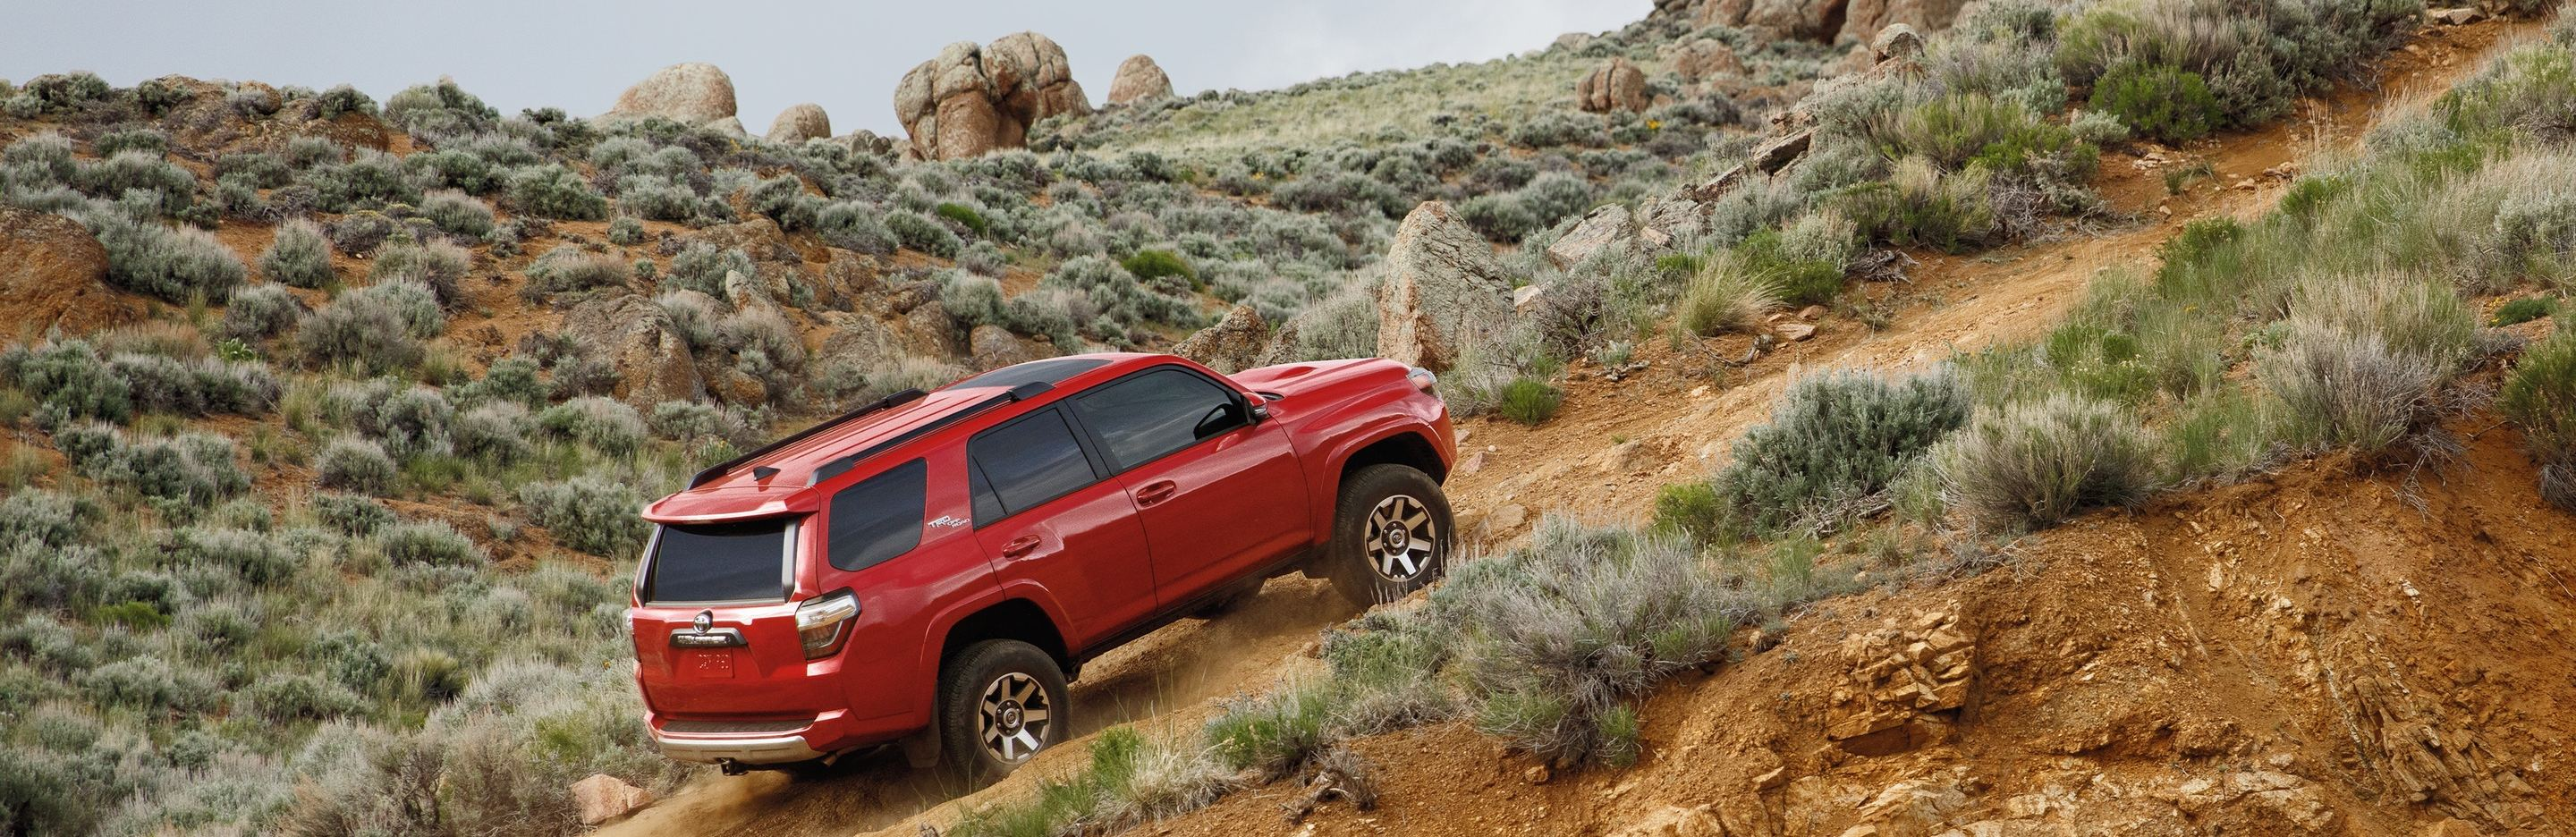 2020 Toyota 4Runner Lease near Lenexa, KS, 66215